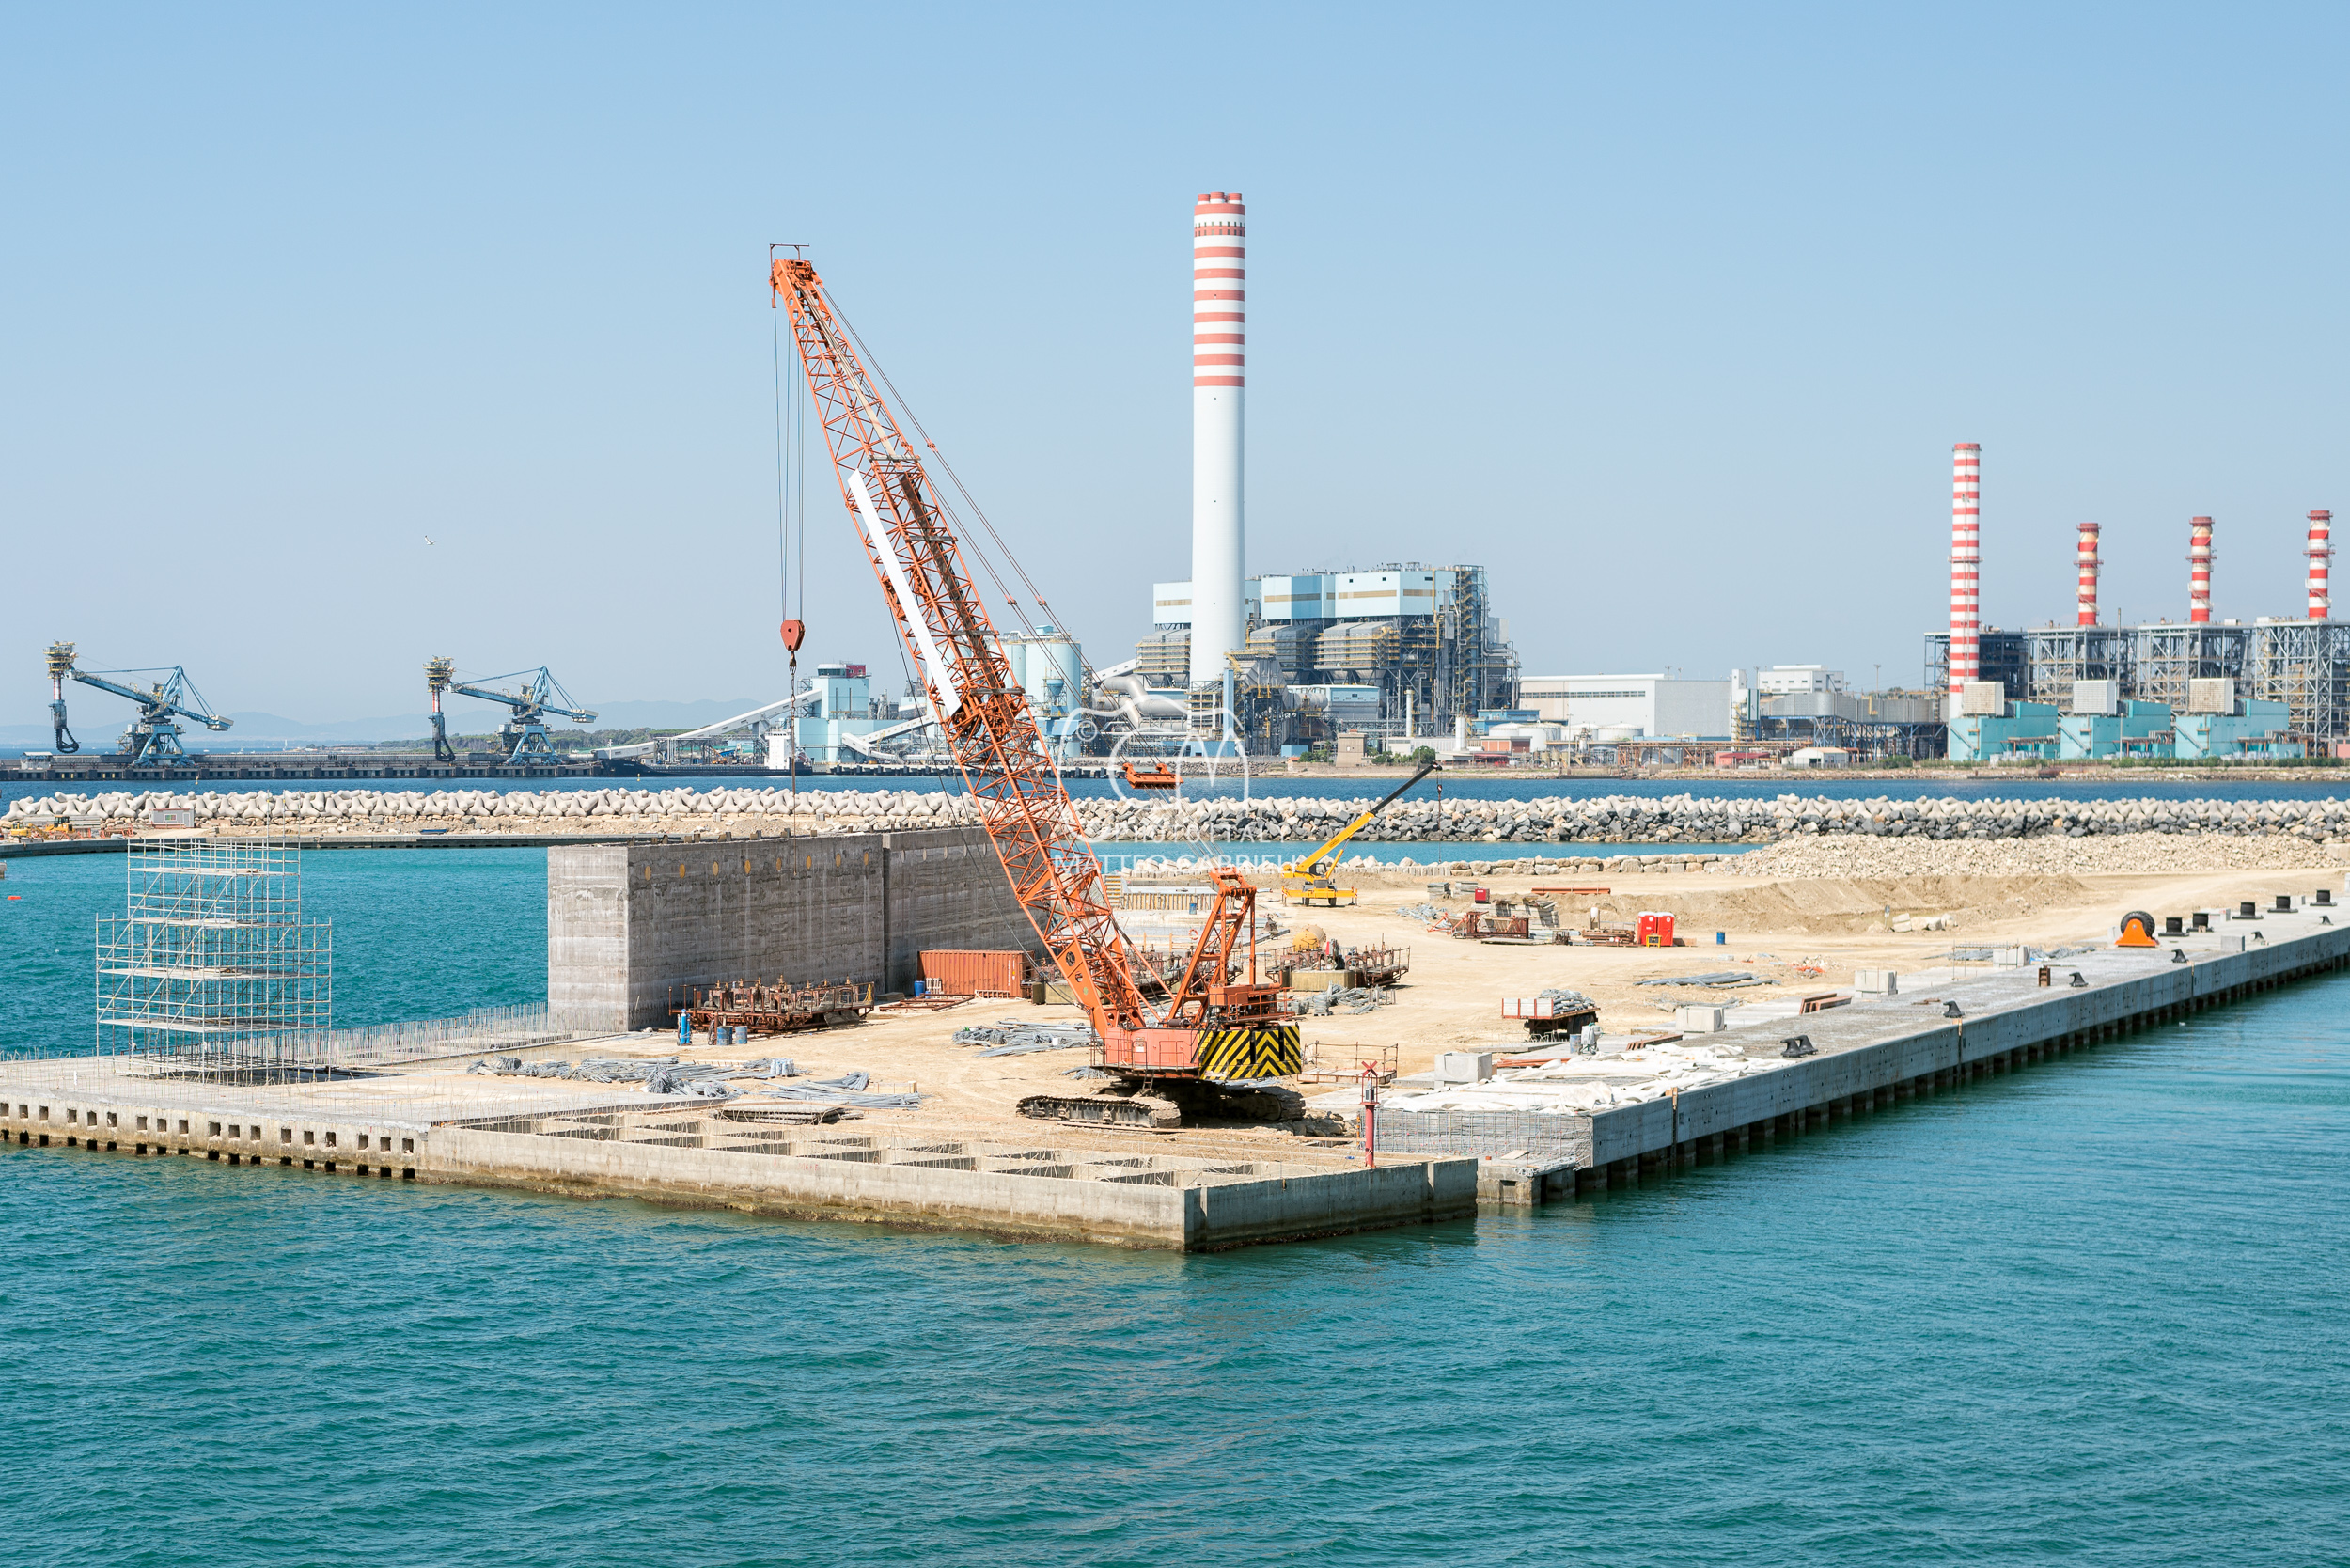 A Crane is building new harbour docks facing a thermal power plant, Civitavecchia Italy